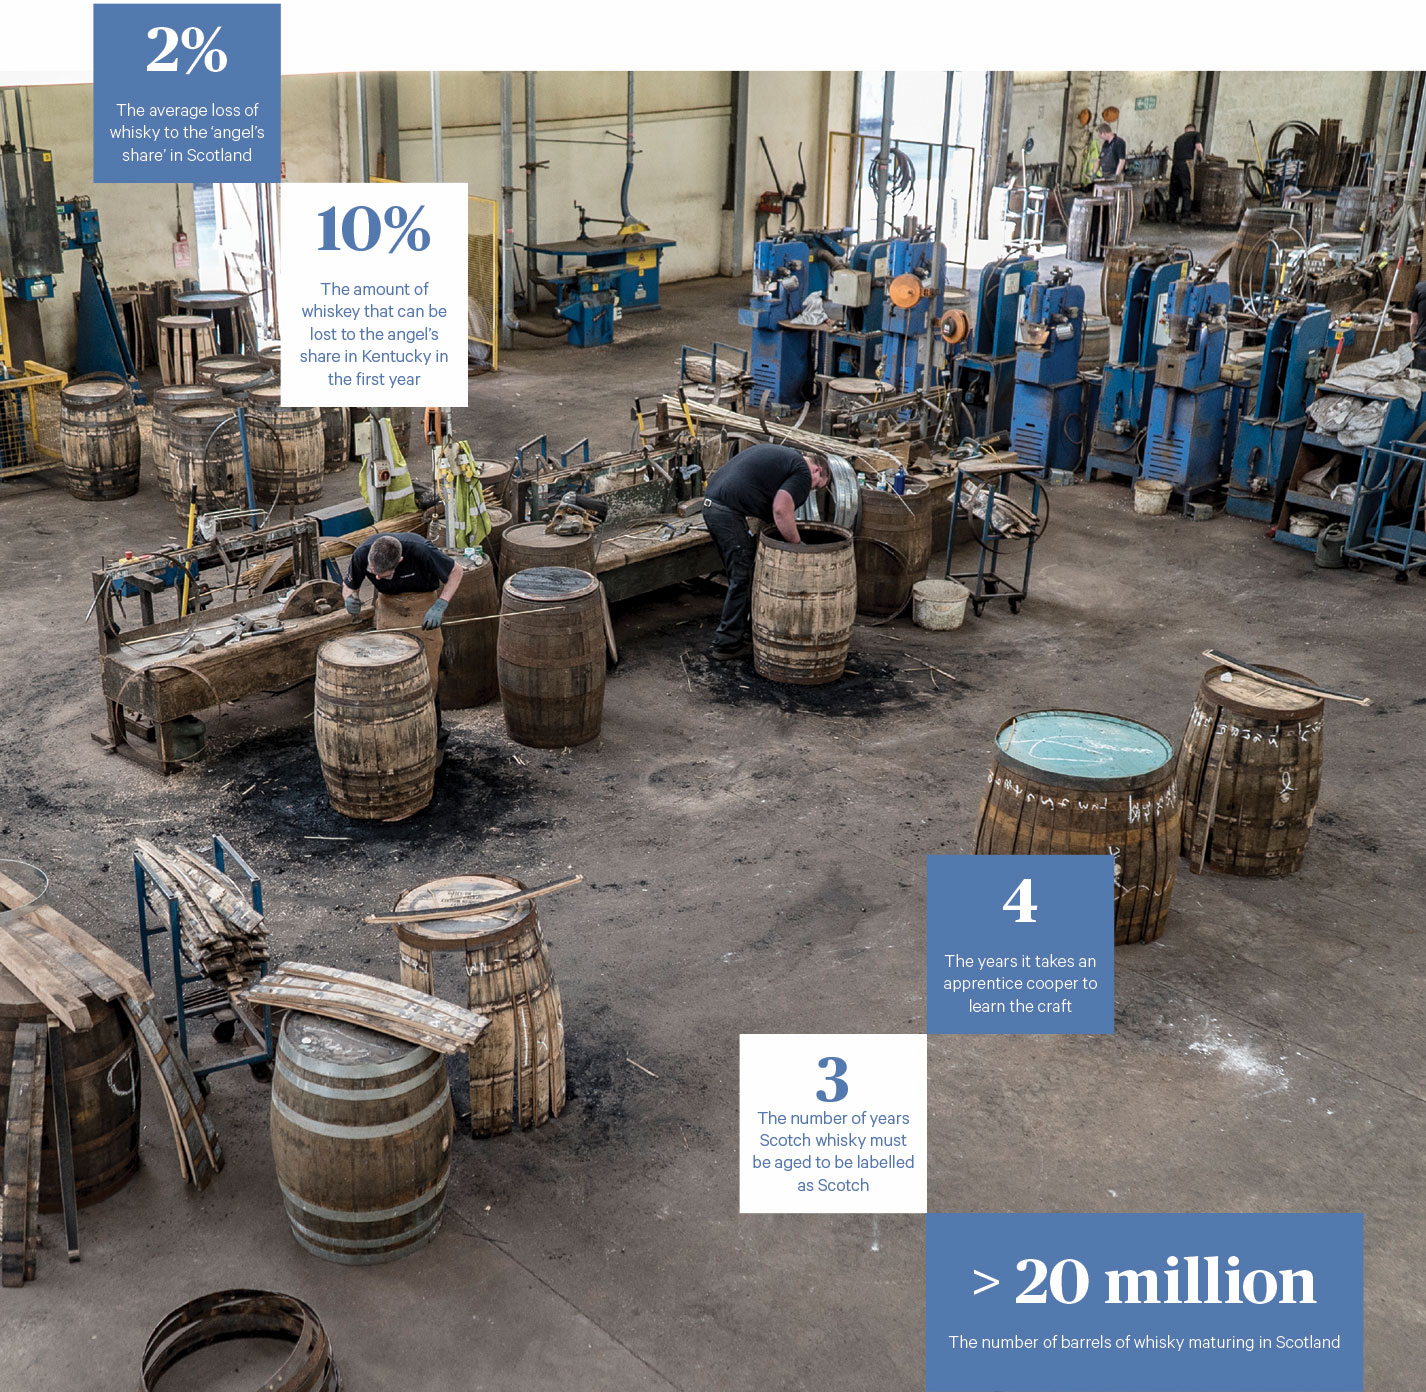 The cooperage at The Balvenie distillery.